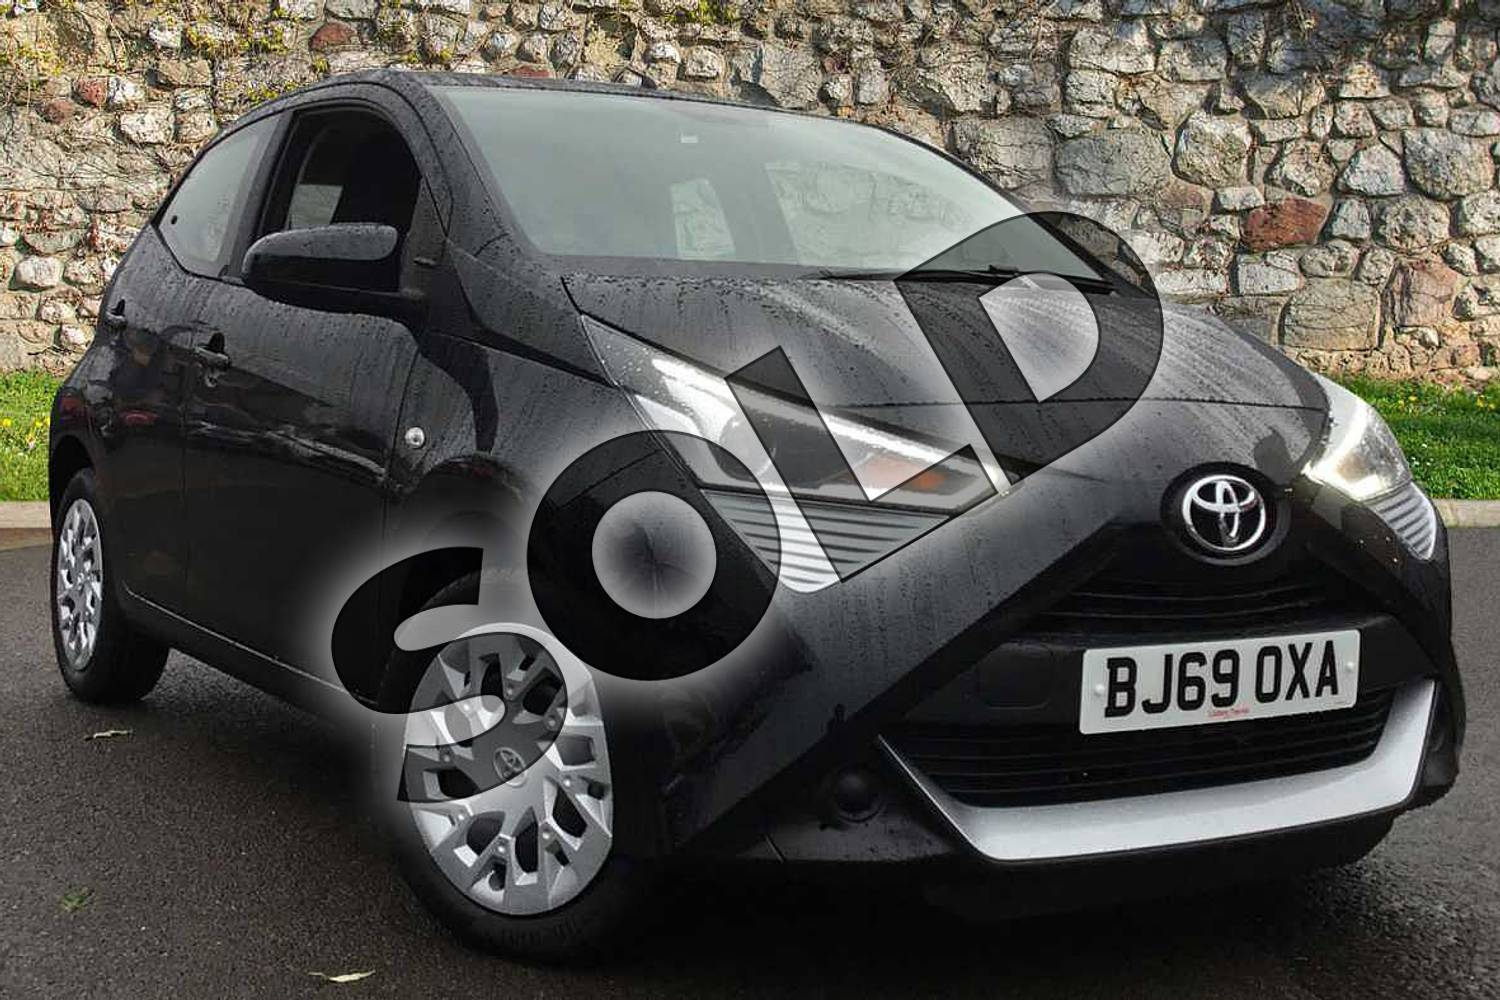 2019 Toyota Aygo Hatchback 1.0 VVT-i X-Play 5dr in Bold Black at Listers Toyota Coventry